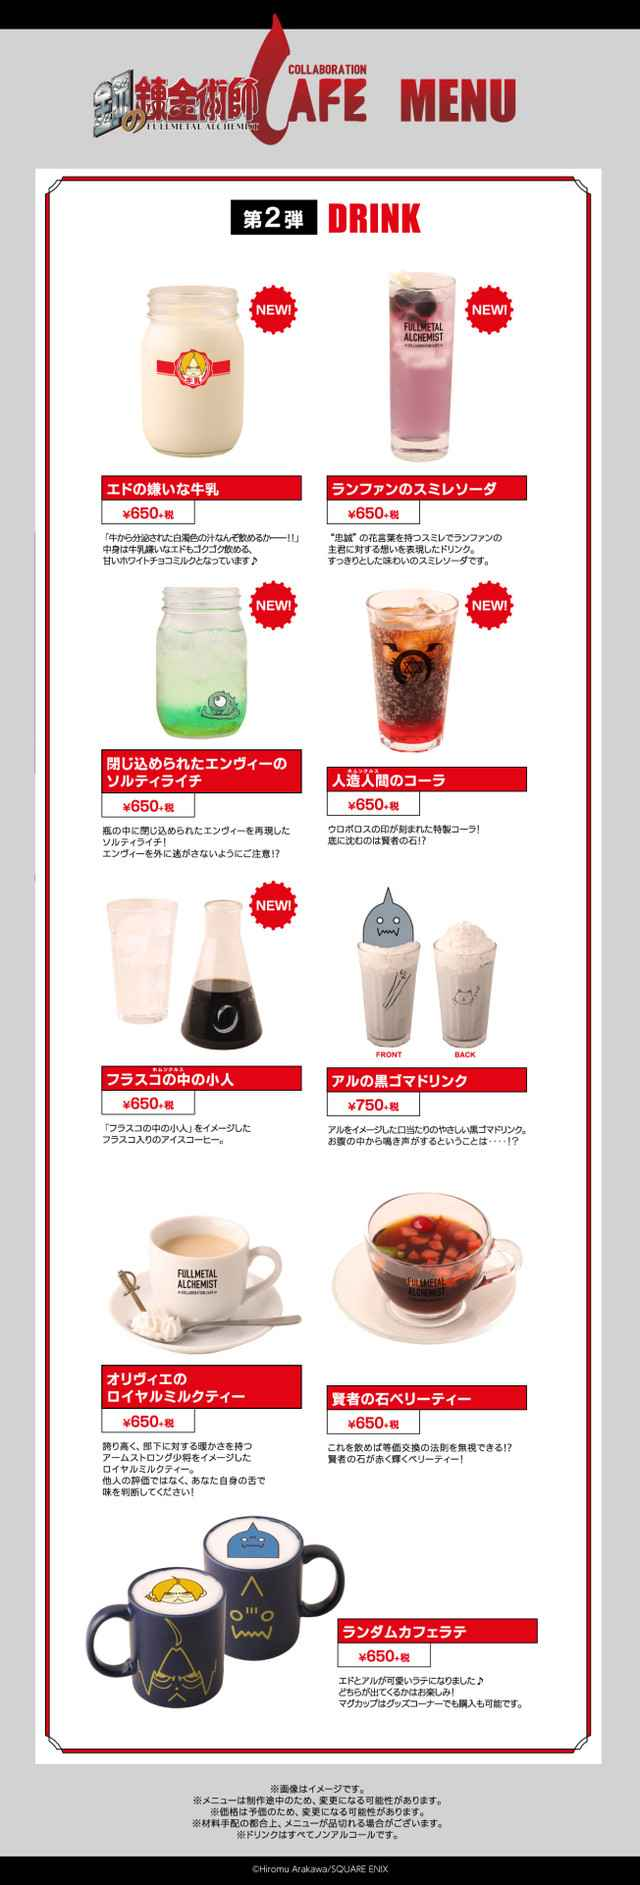 FMA Cafe Drinks Menu - Second Round - Tokyo, Japan